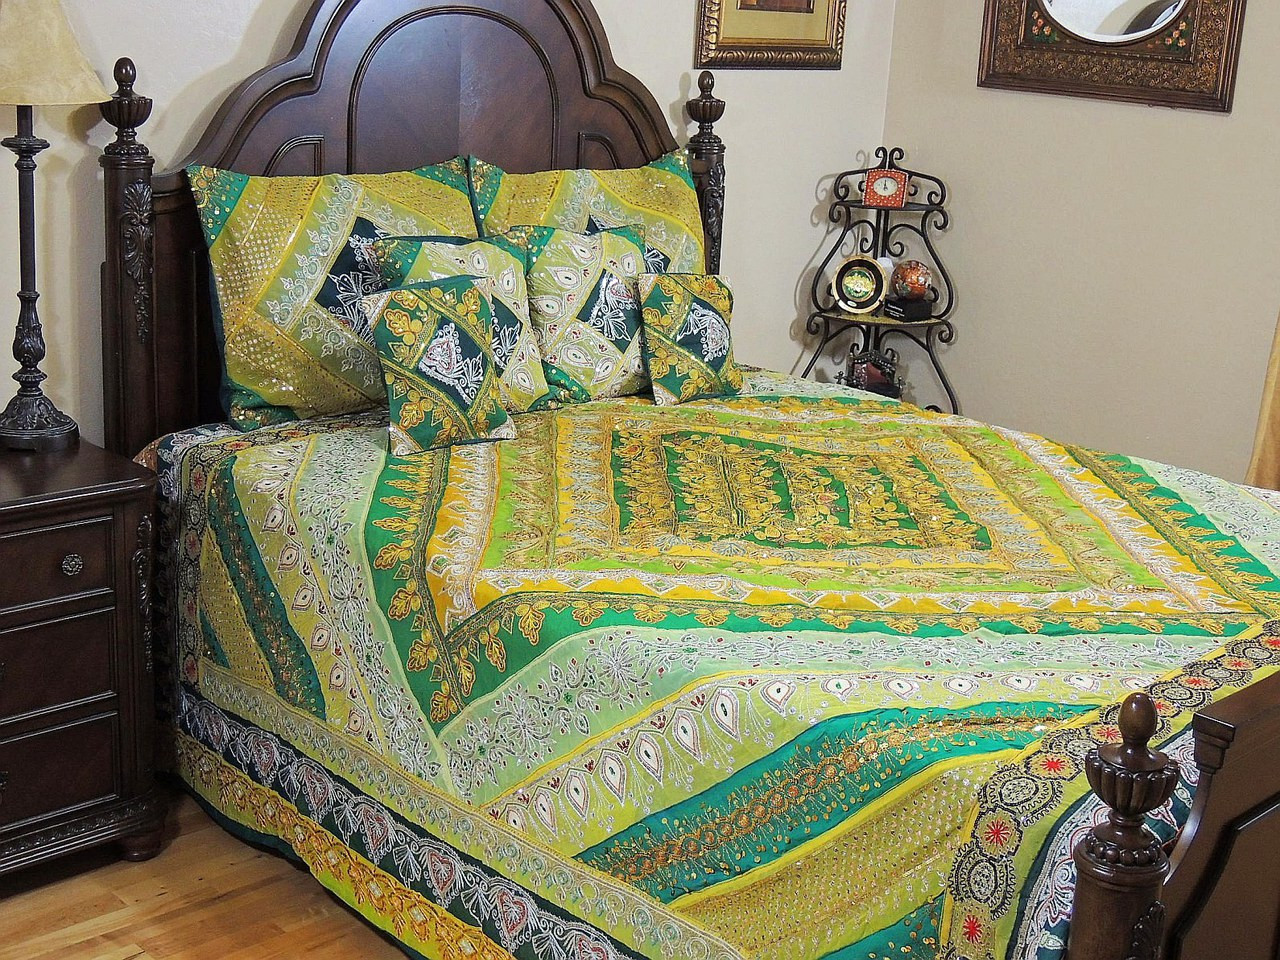 Indian Bedding Set   Decorative Green Sari Beaded Duvet Pillowcases   King.